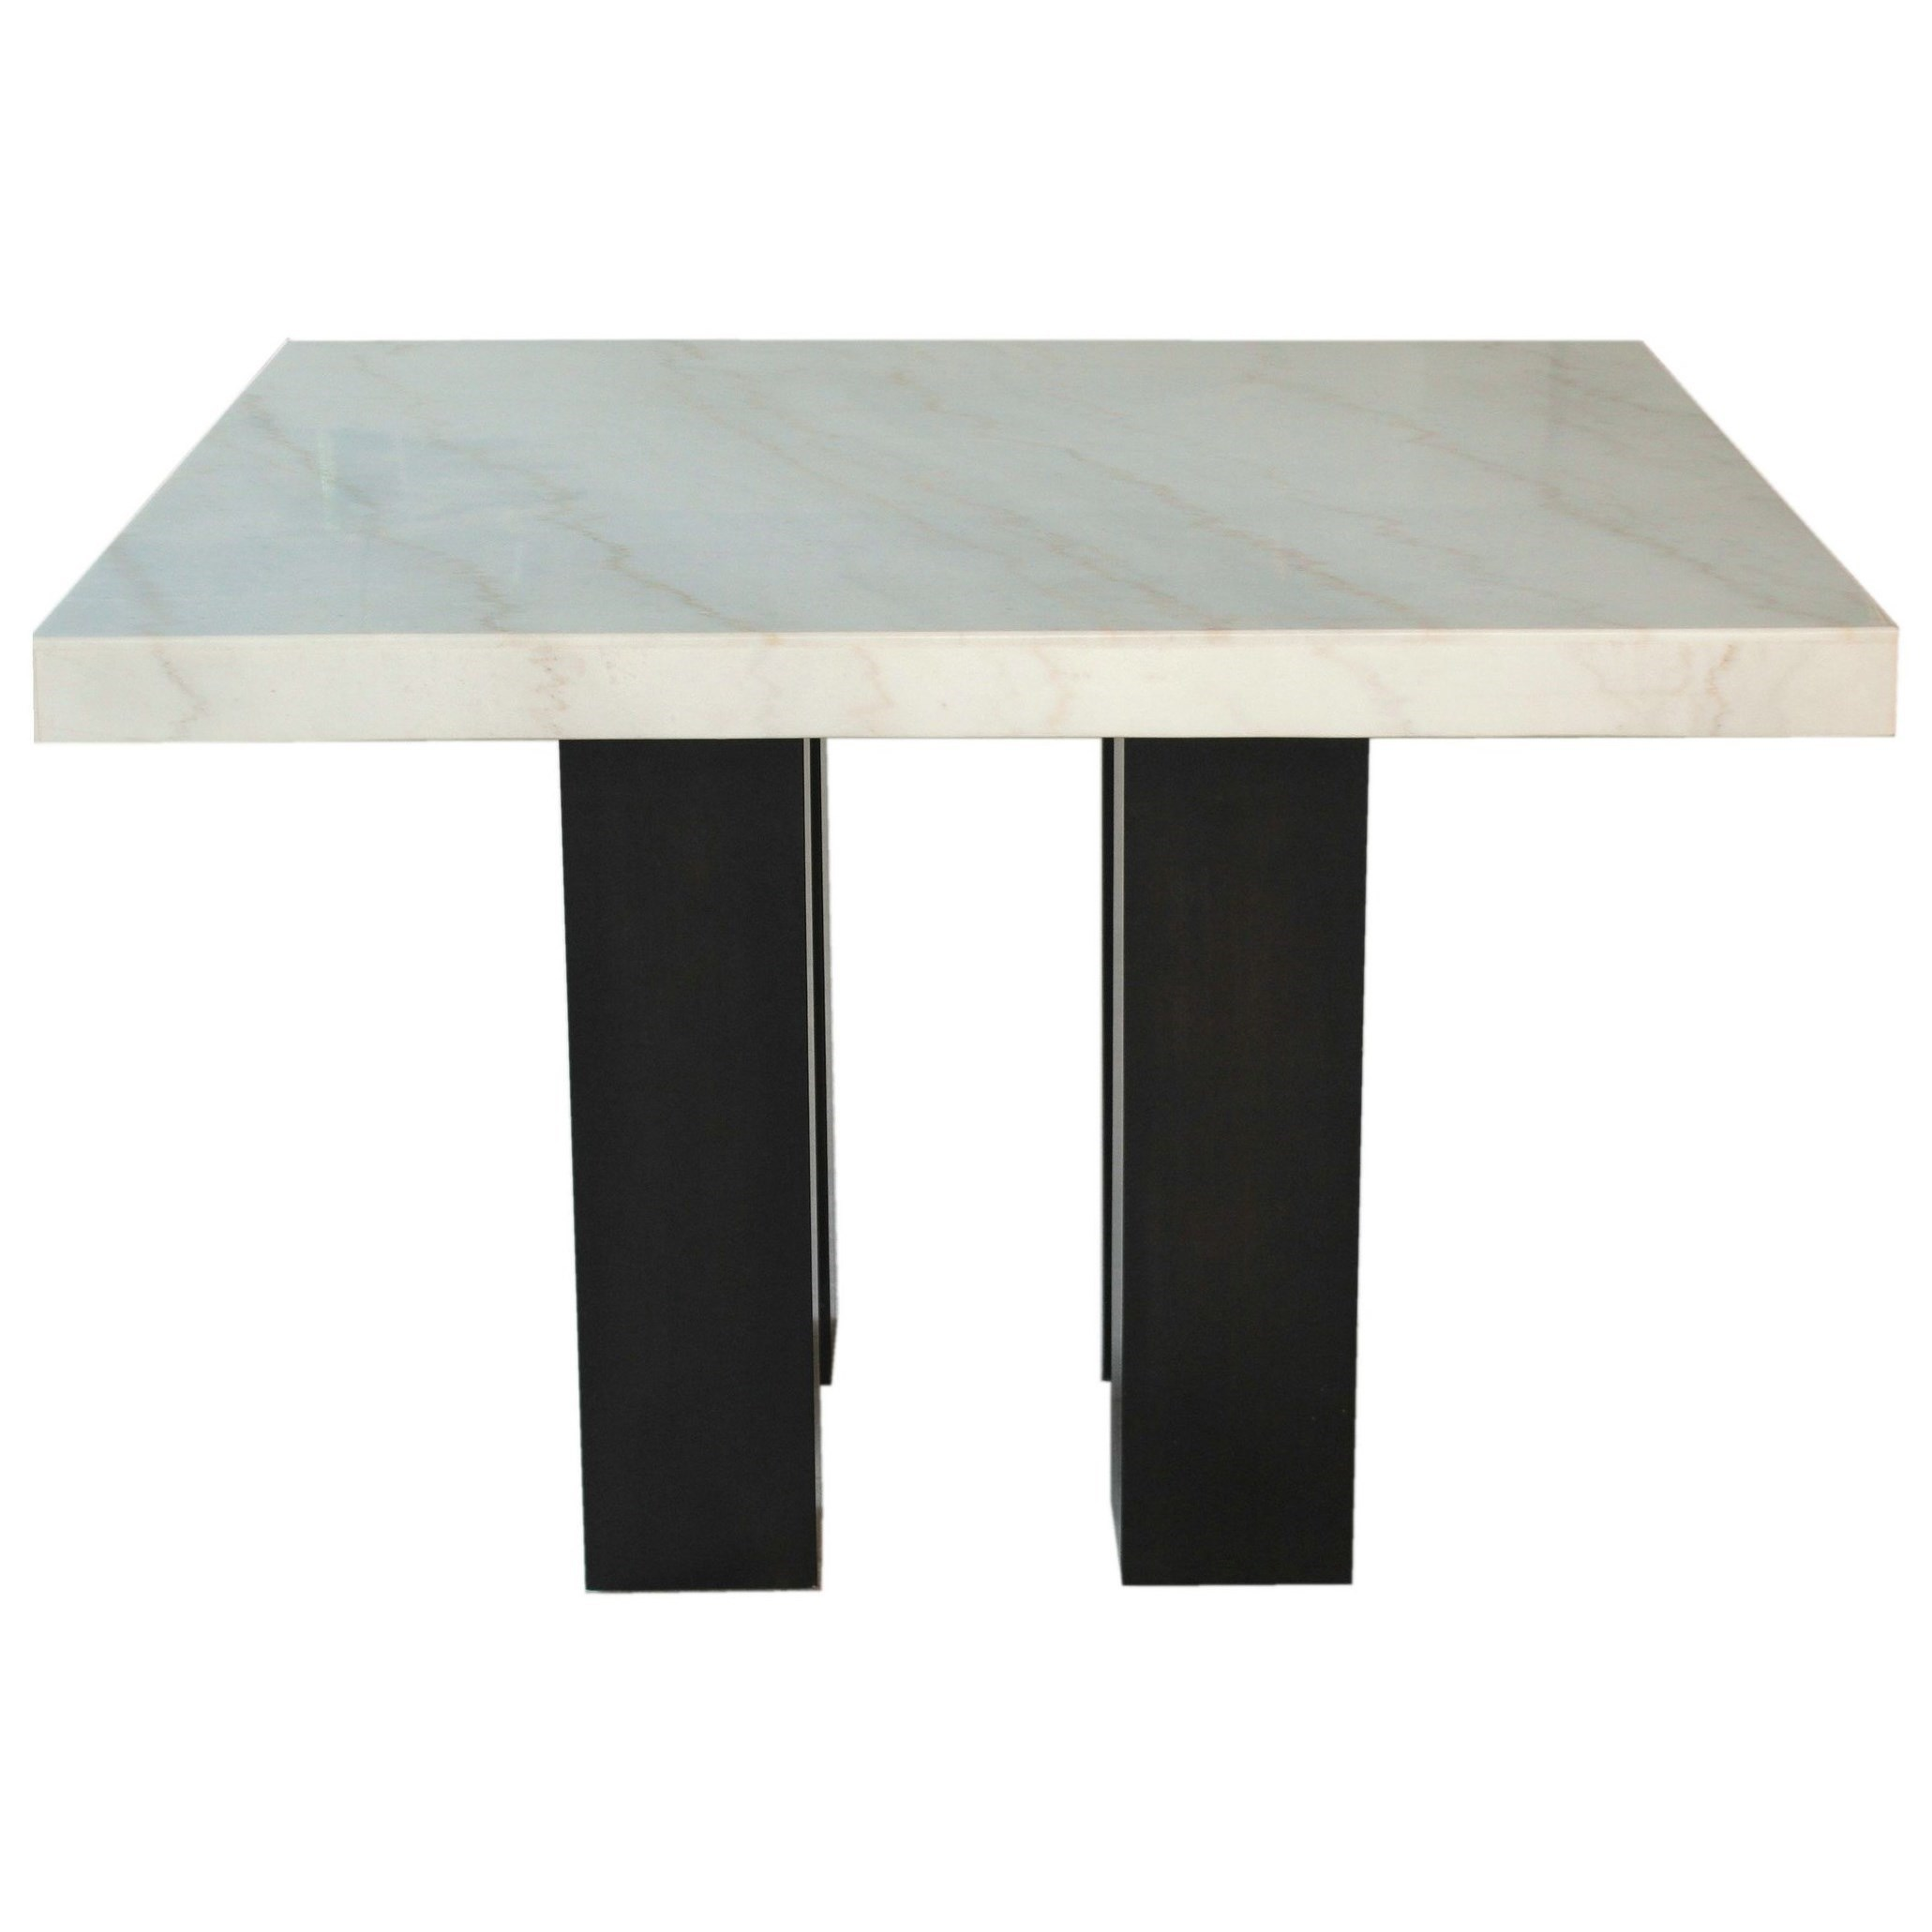 Camila Square Counter Height Table by Steve Silver at Walker's Furniture